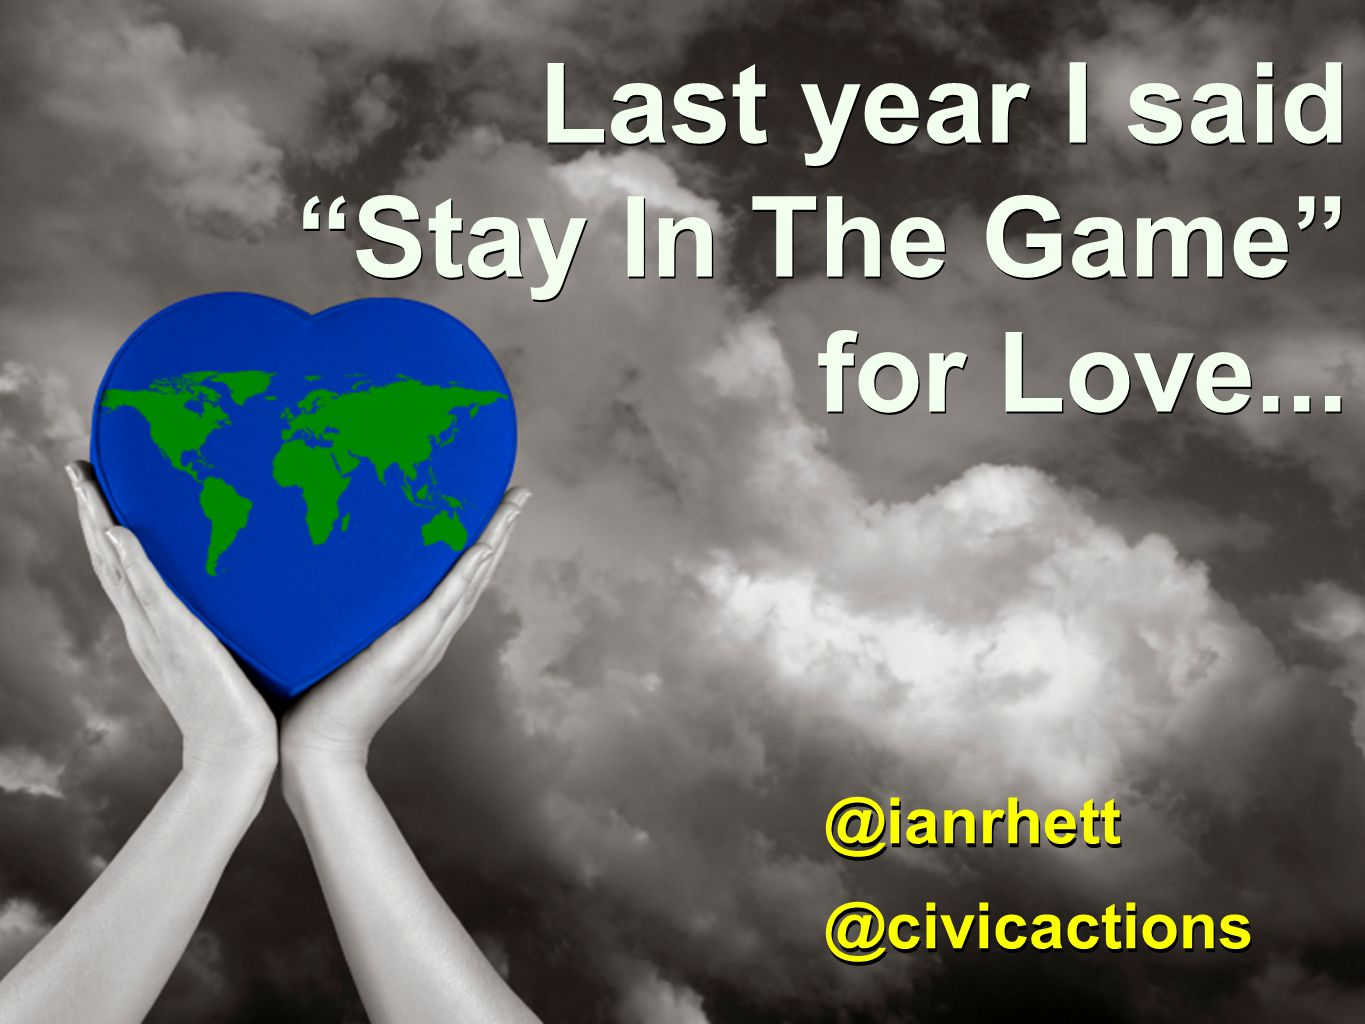 Last year I said Stay In The Game for Love...